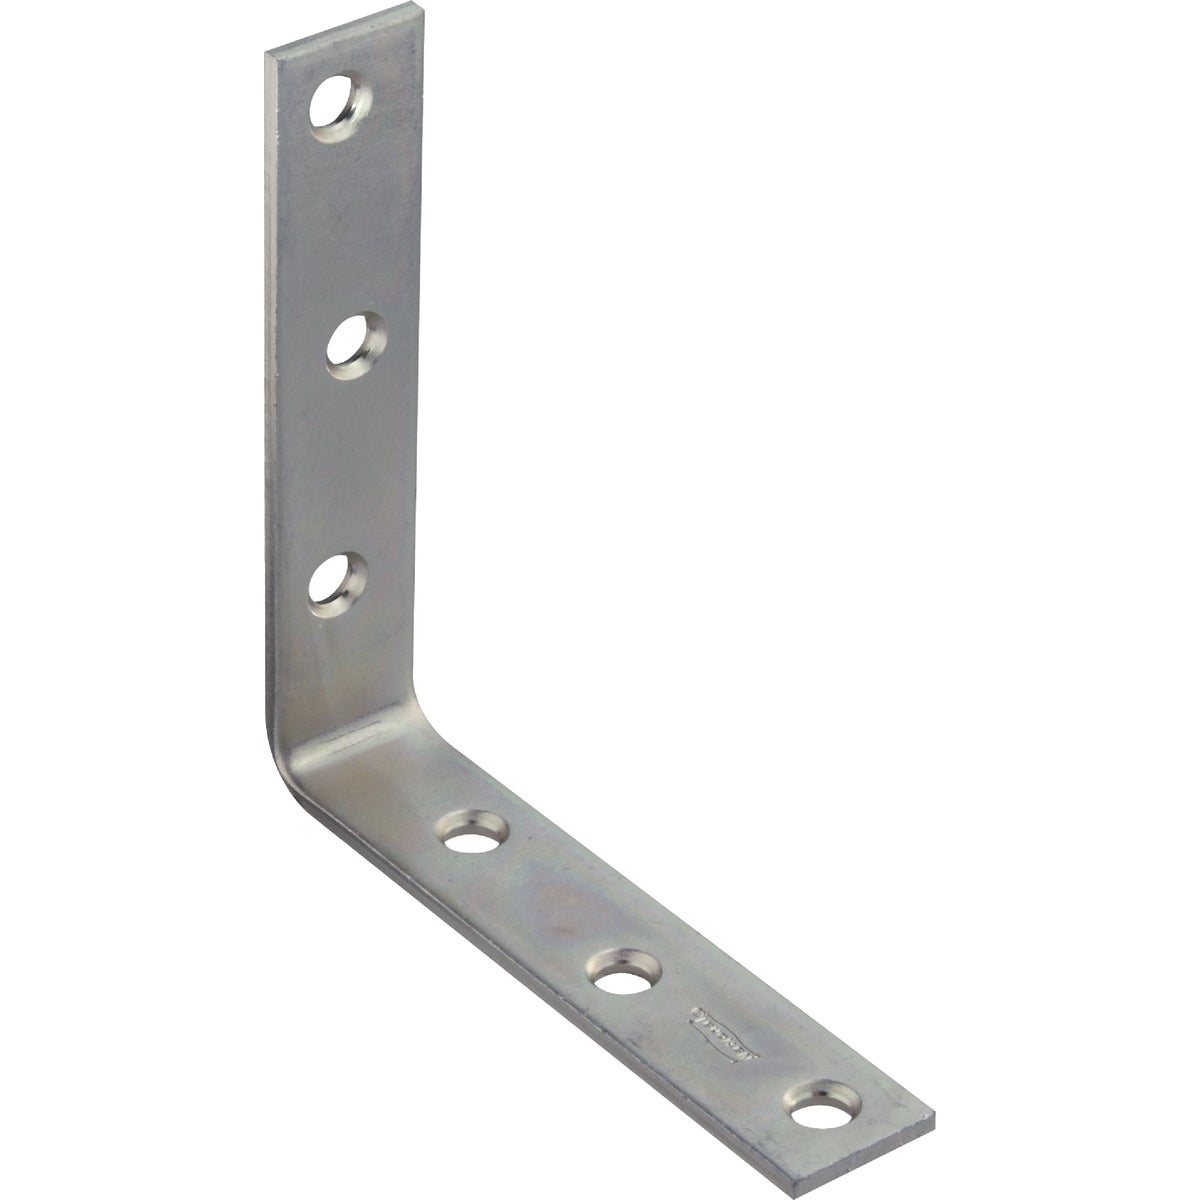 5X1 CORNER IRON - N220152 by National Mfg Co